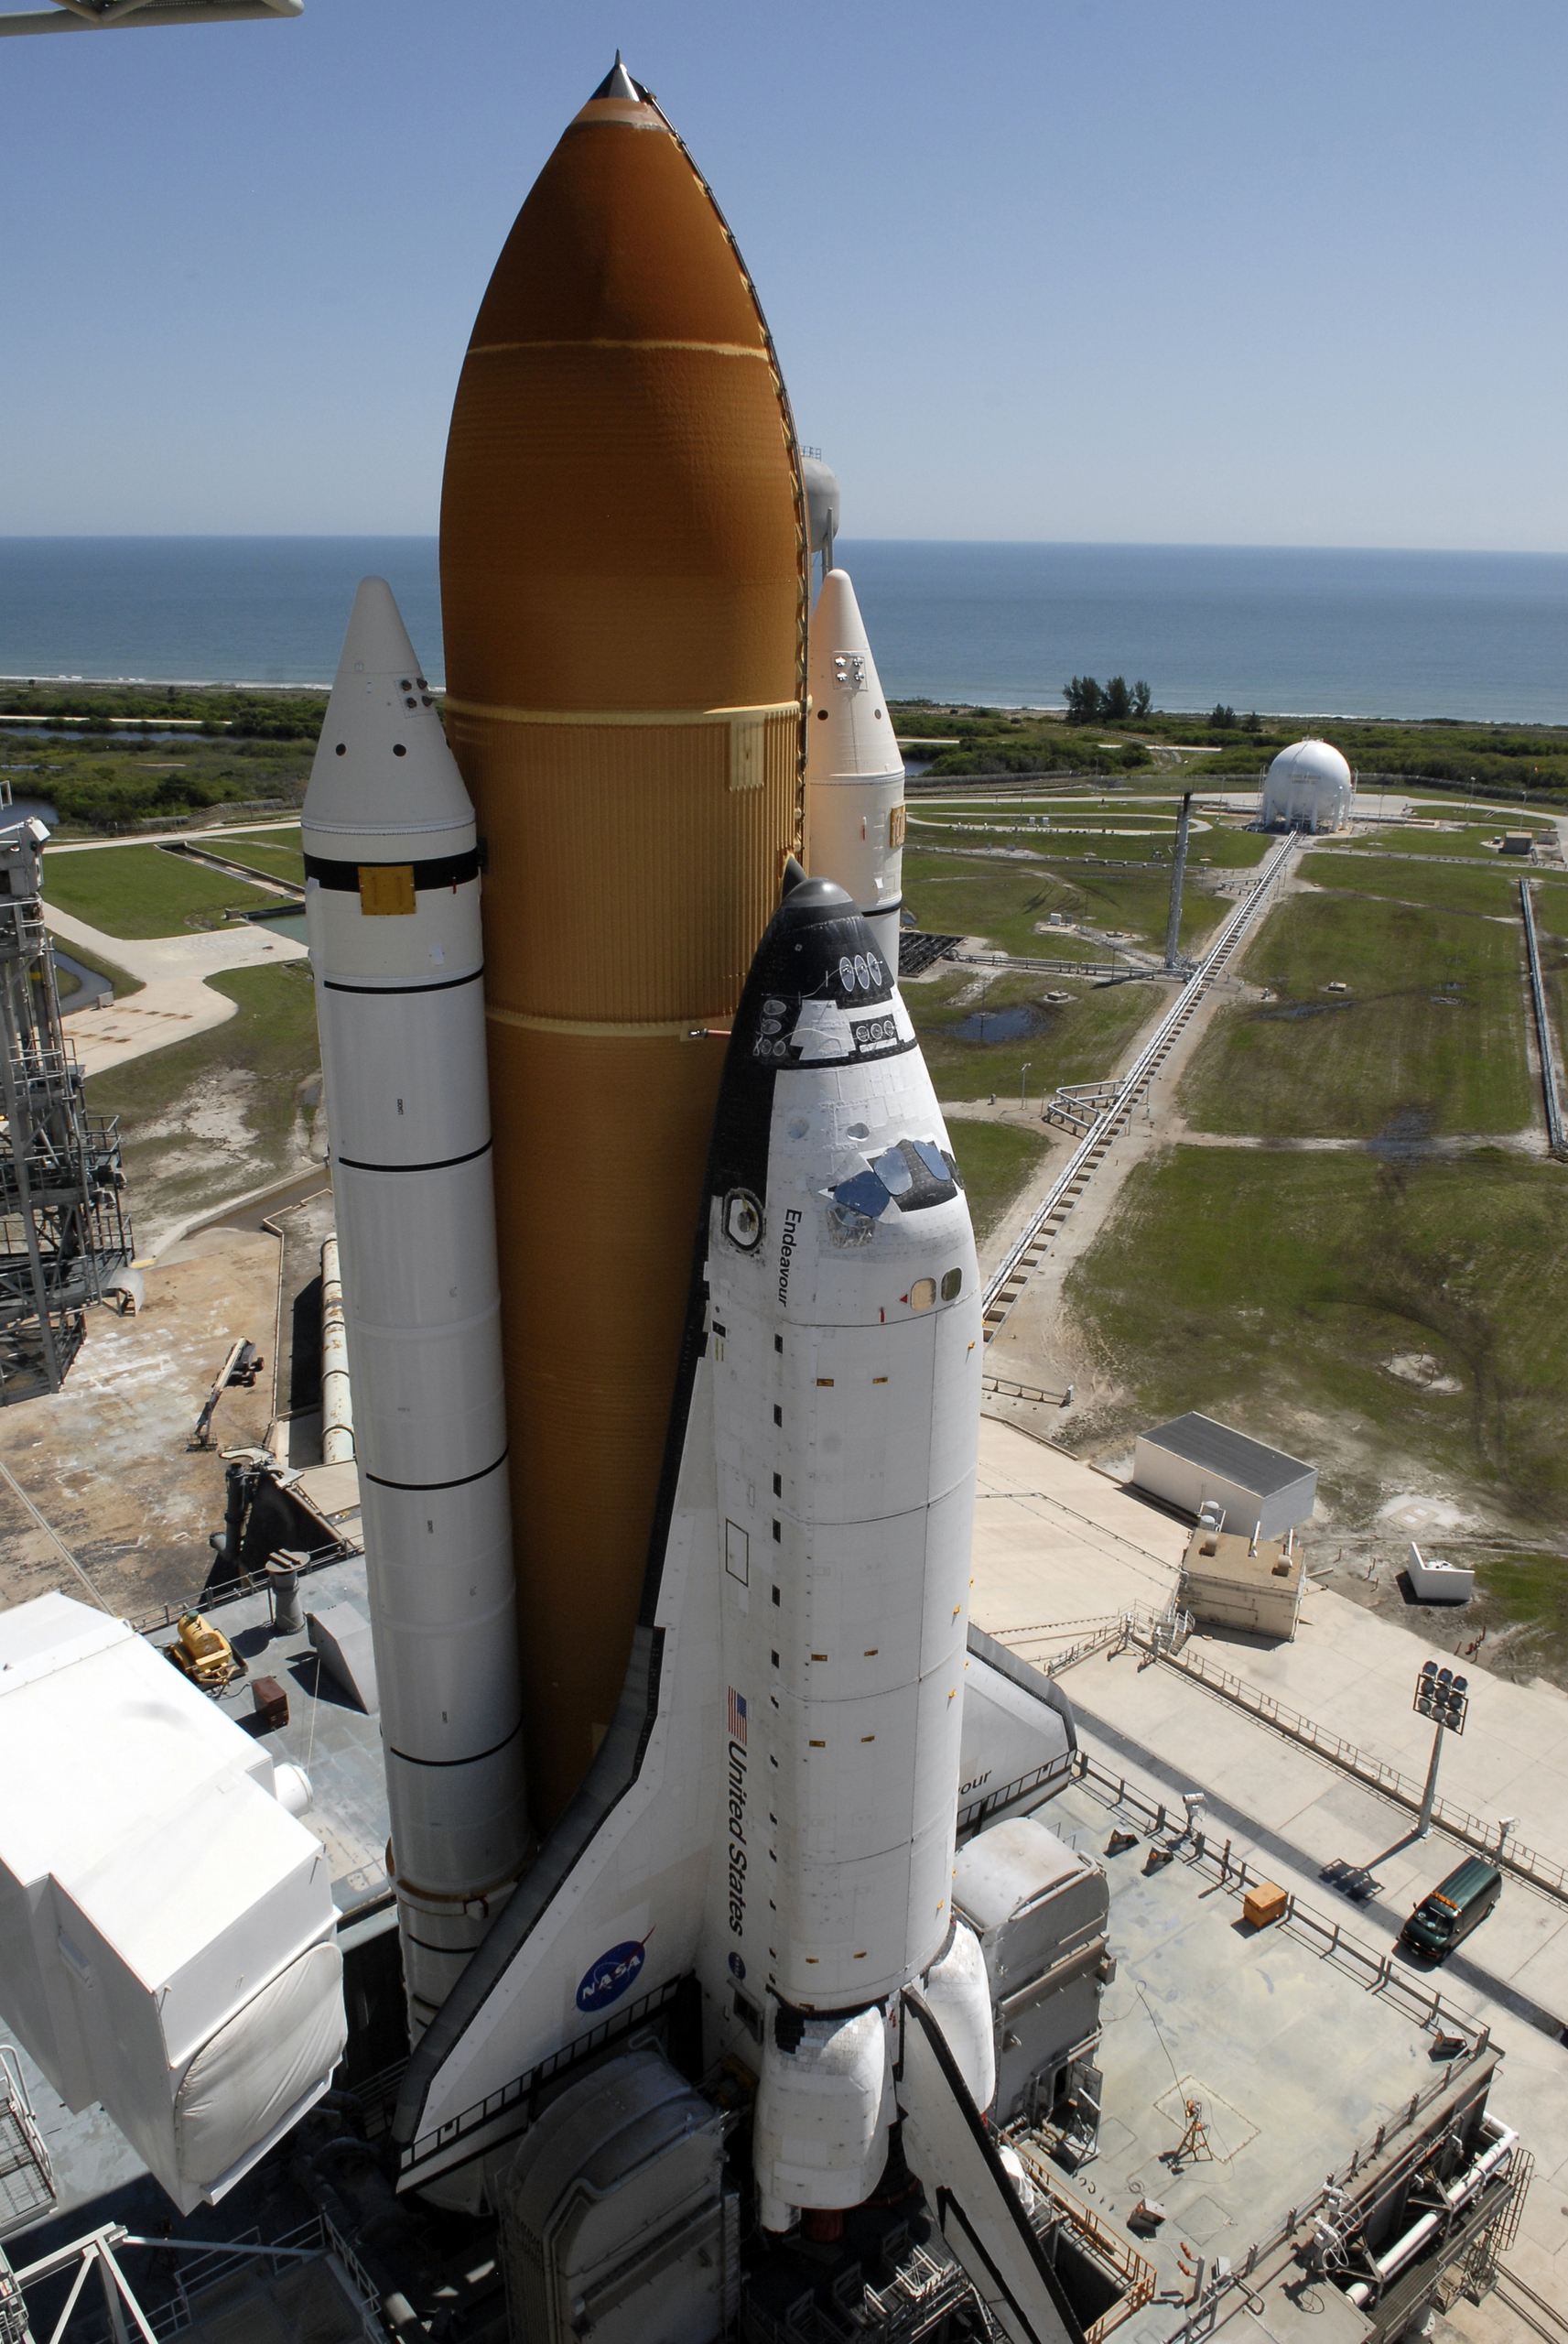 space shuttle endeavour in space - photo #19